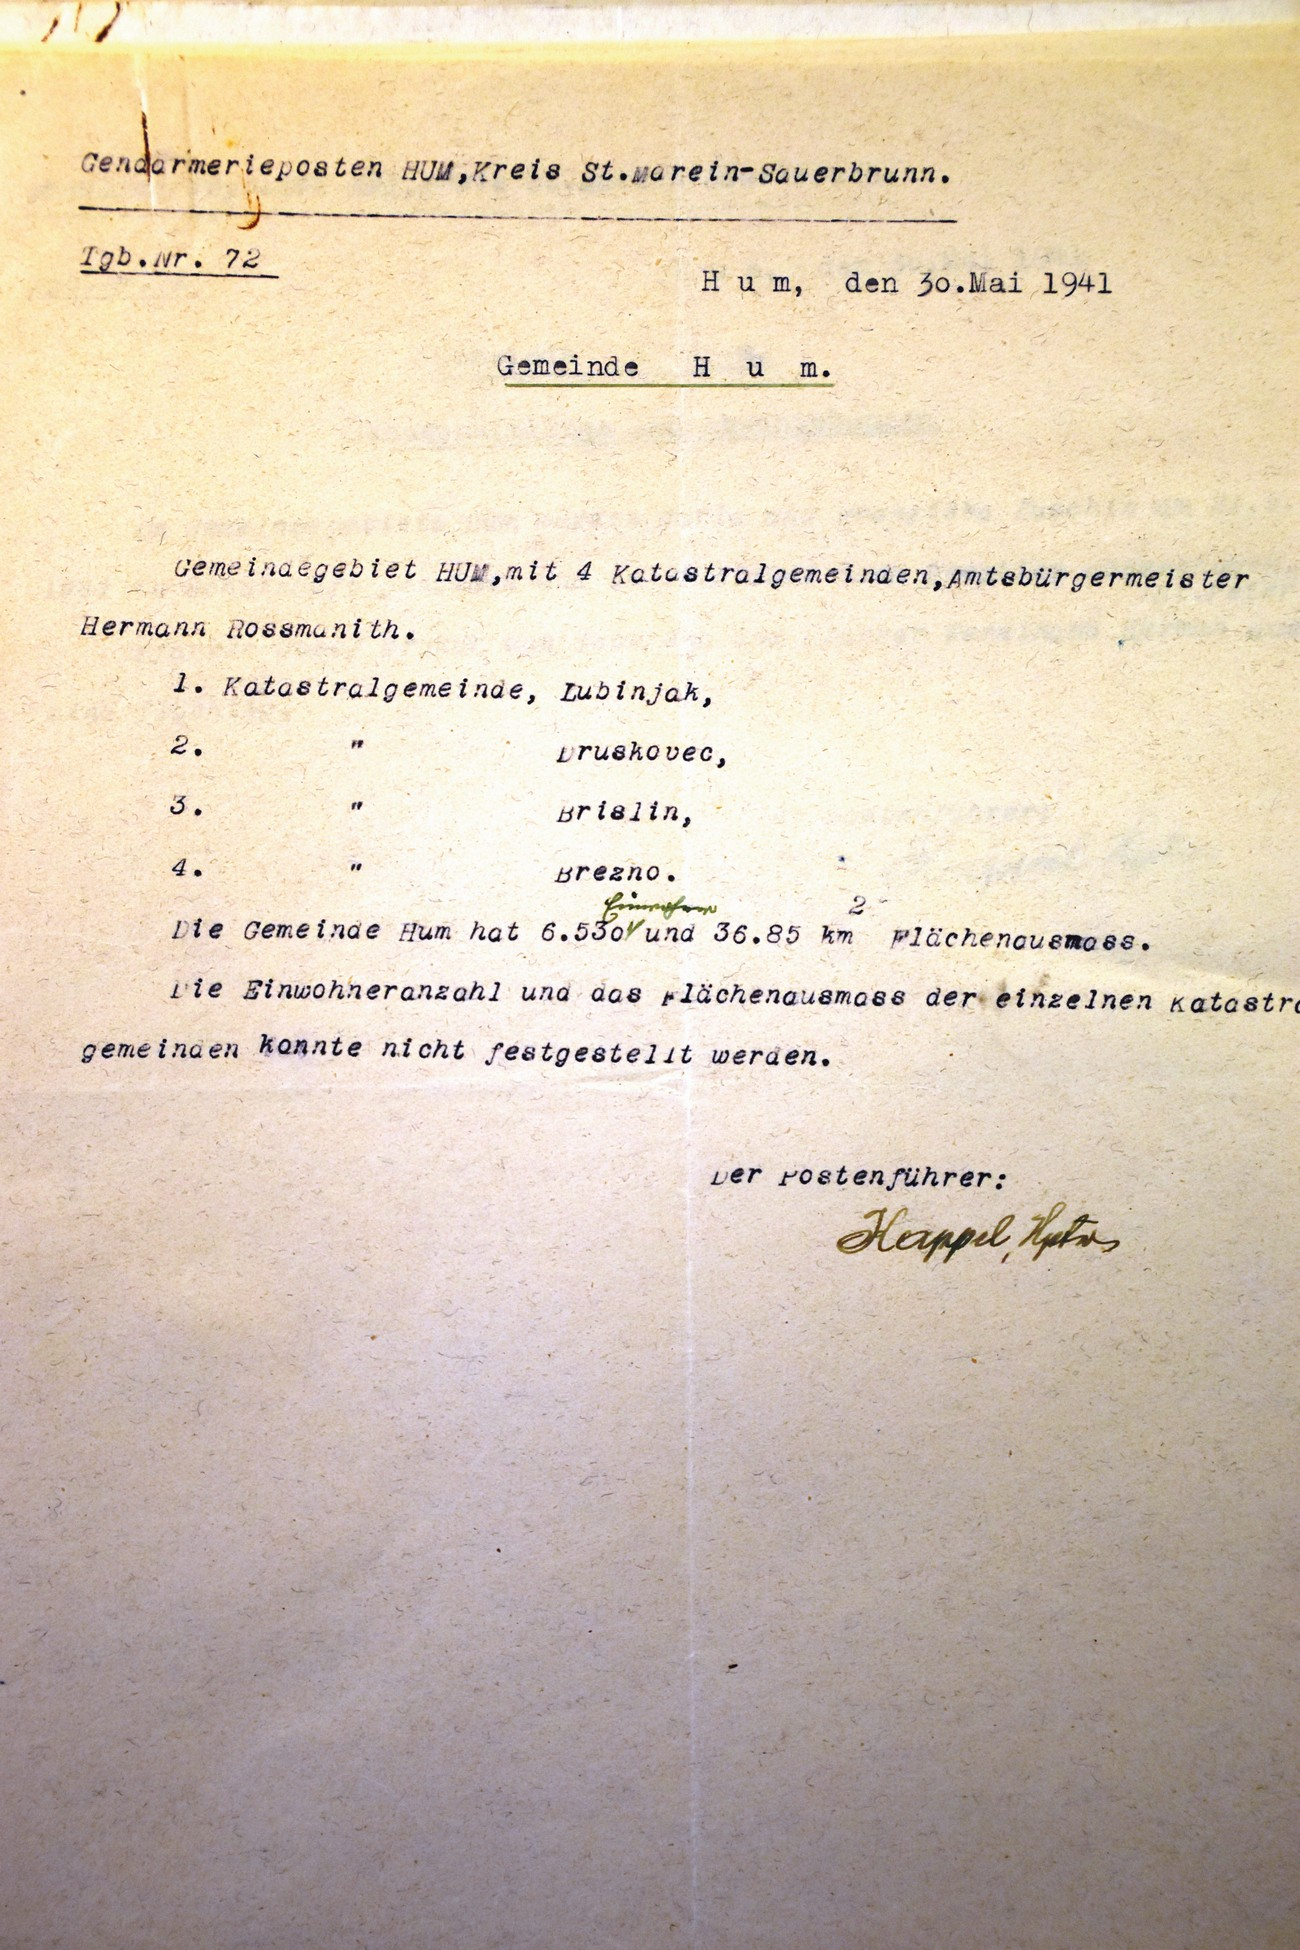 A report from the Hum Gendarmerie Station (the Šmarje District based in Rogaška Slatina) dated 30 May 1941 on the Occupation Municipality of Hum, which, besides Hum, also included four corresponding cadastral units – Lupinjek, Druškovec, Prišlin and Brezno. Archives of the RS.